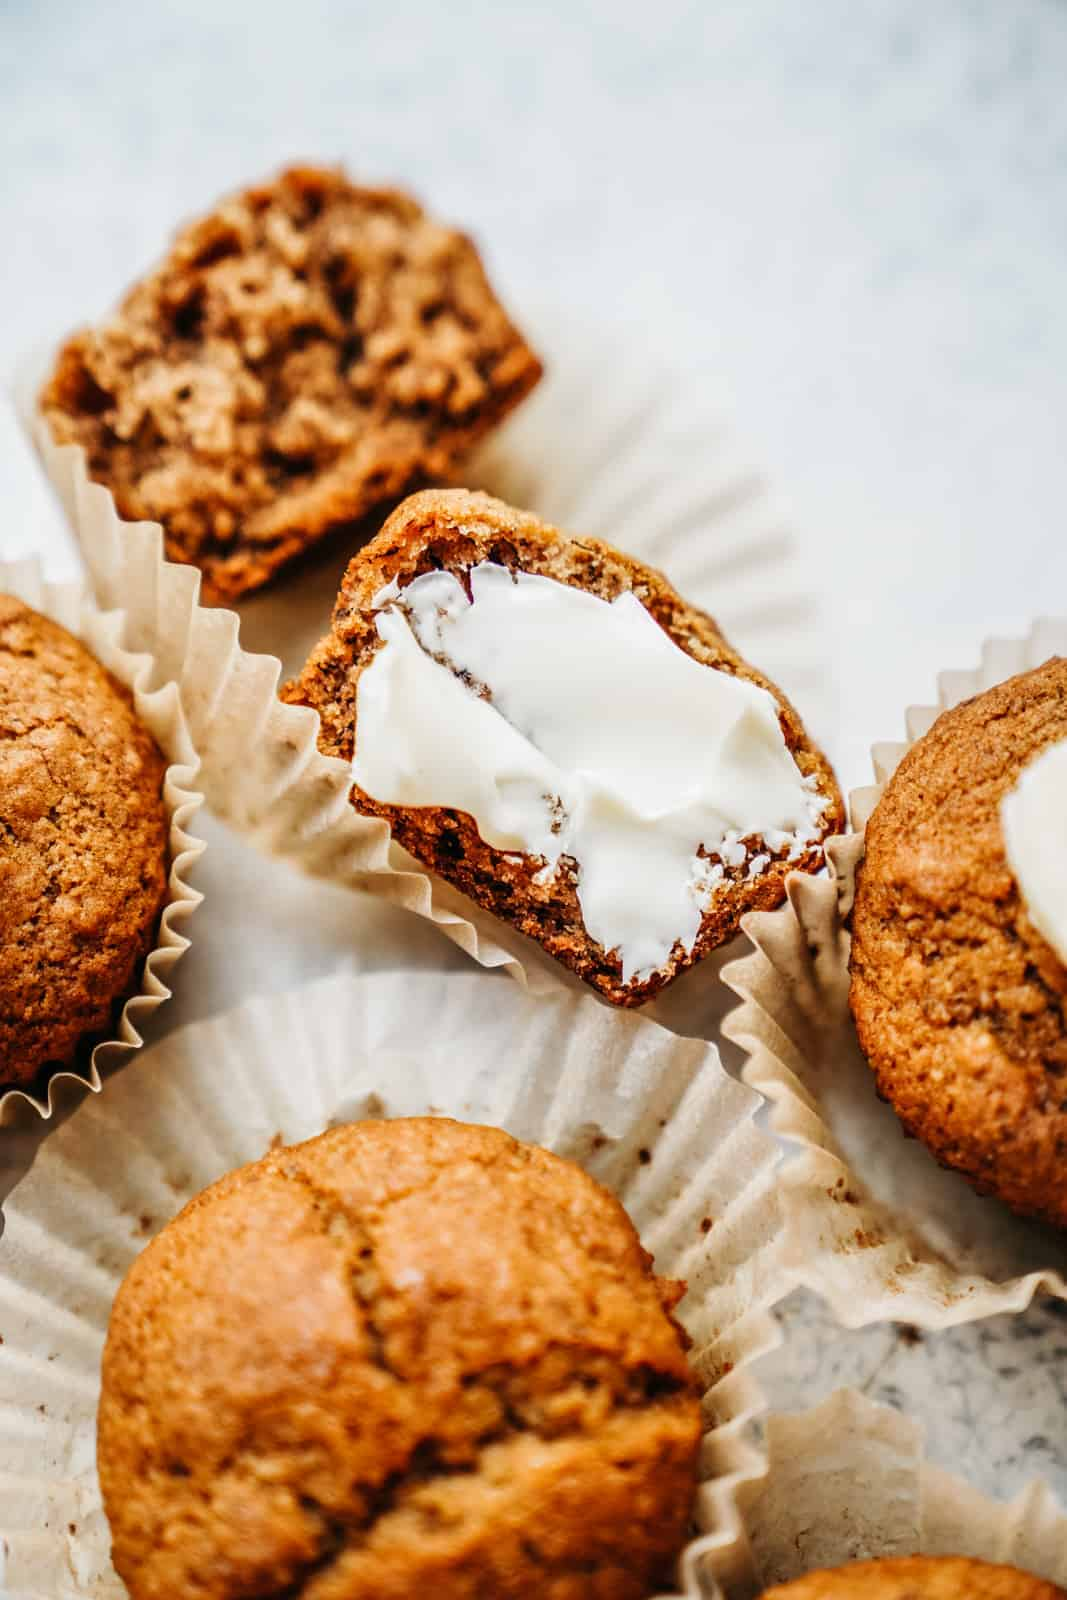 Close-up of Banana Muffins with vegan butter smeared on a cut muffin.